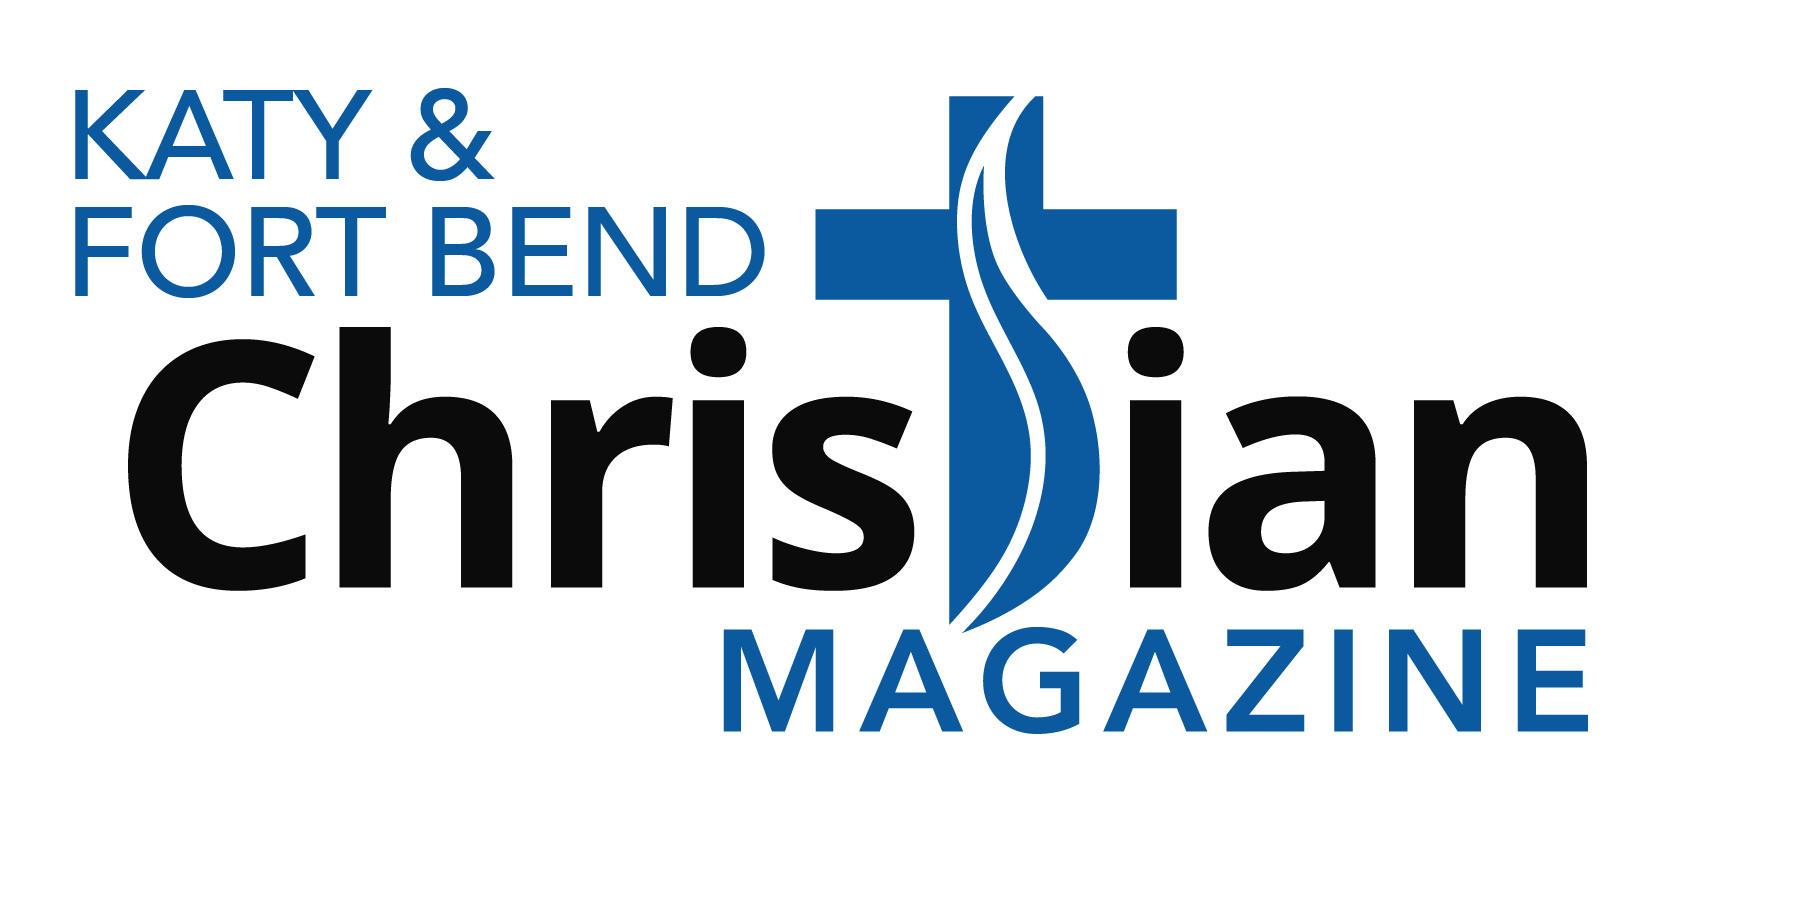 Katy and Fort Bend Christian Magazine - Logo - Blue Accent